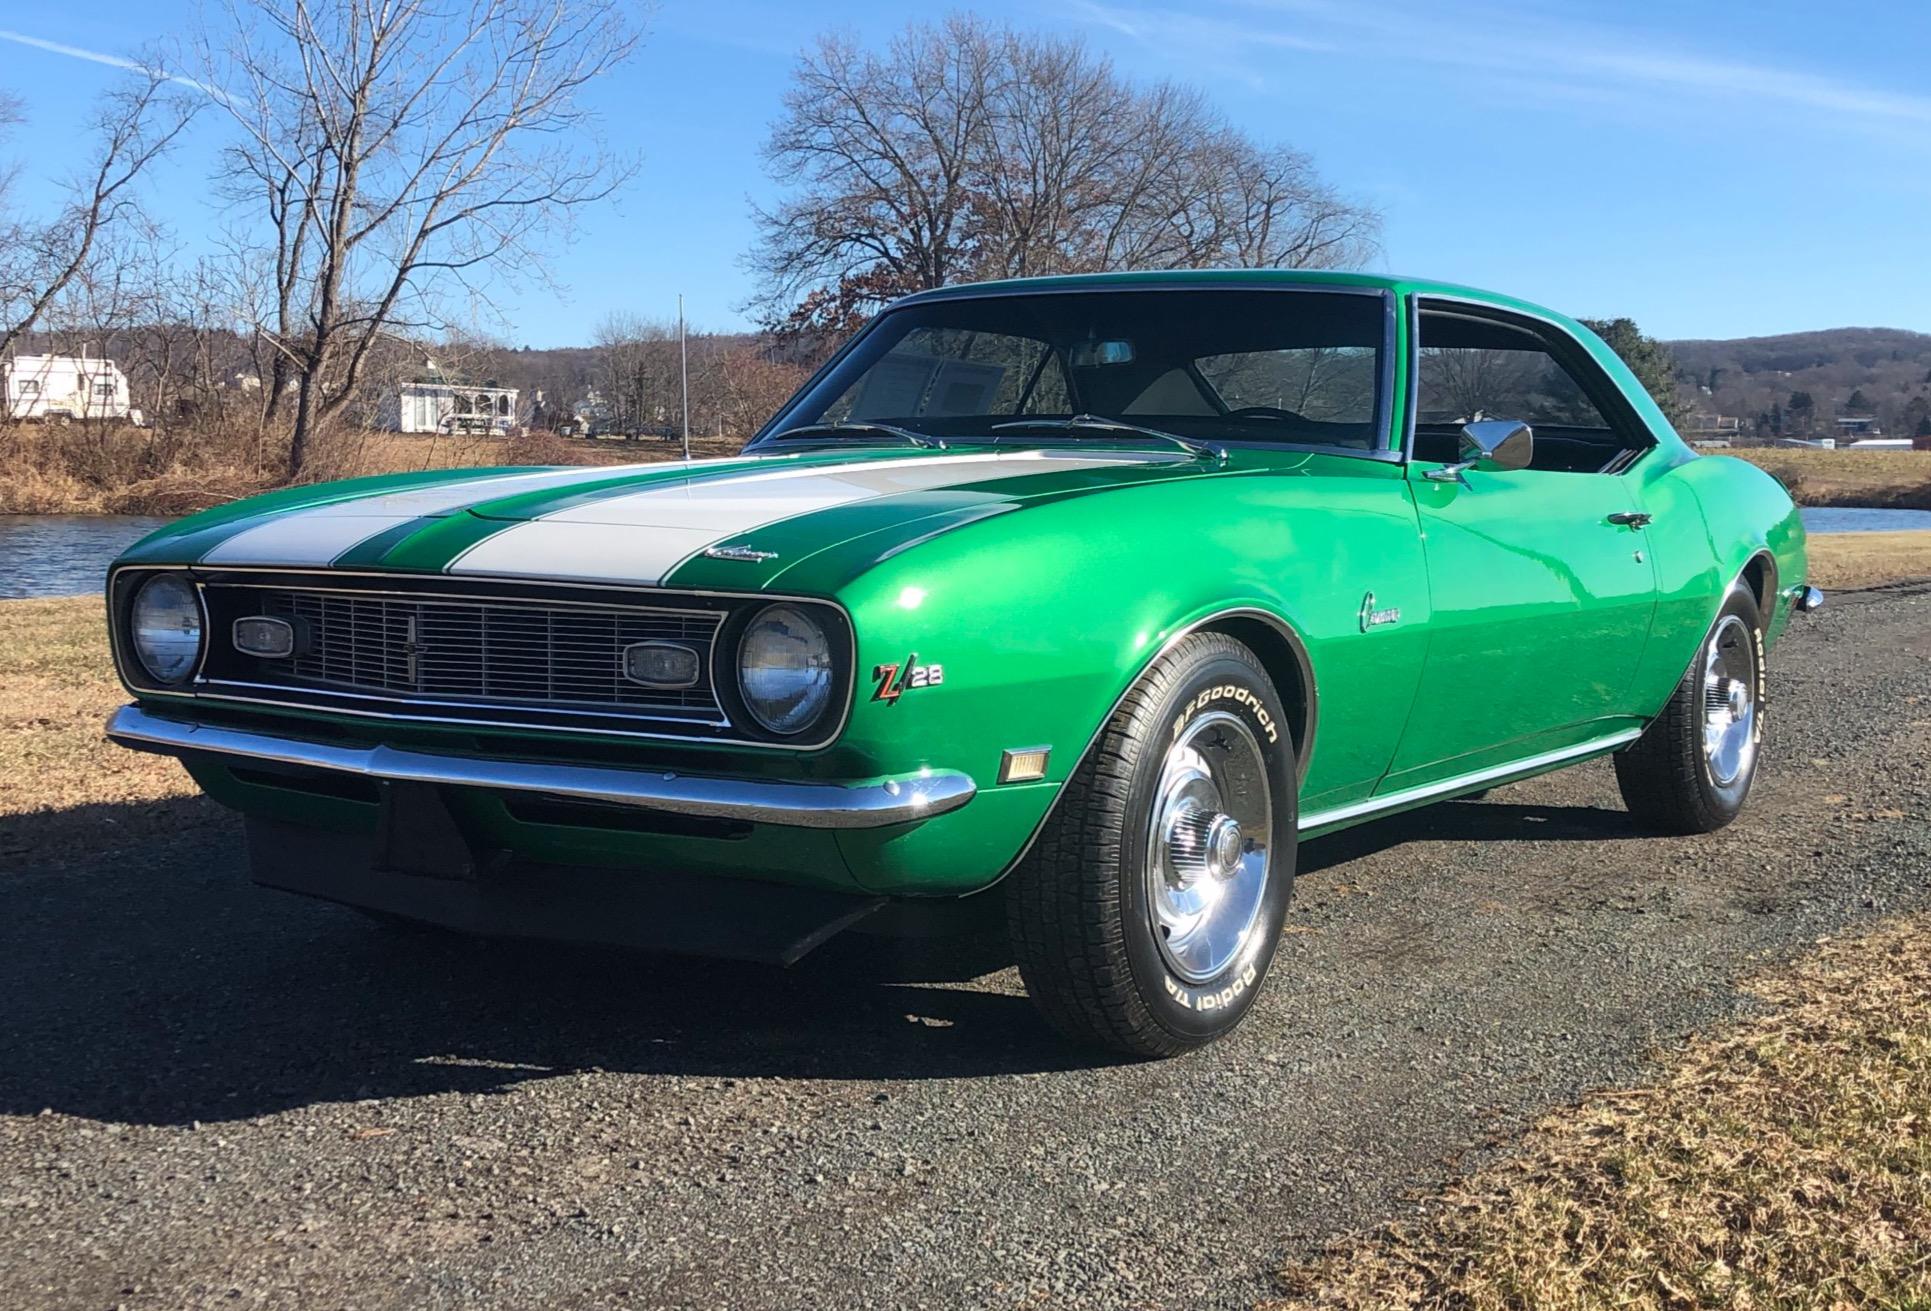 hight resolution of rally green 1968 chevrolet camaro z 28 4 speed for sale on bat auctions closed on february 18 2019 lot 16 392 bring a trailer